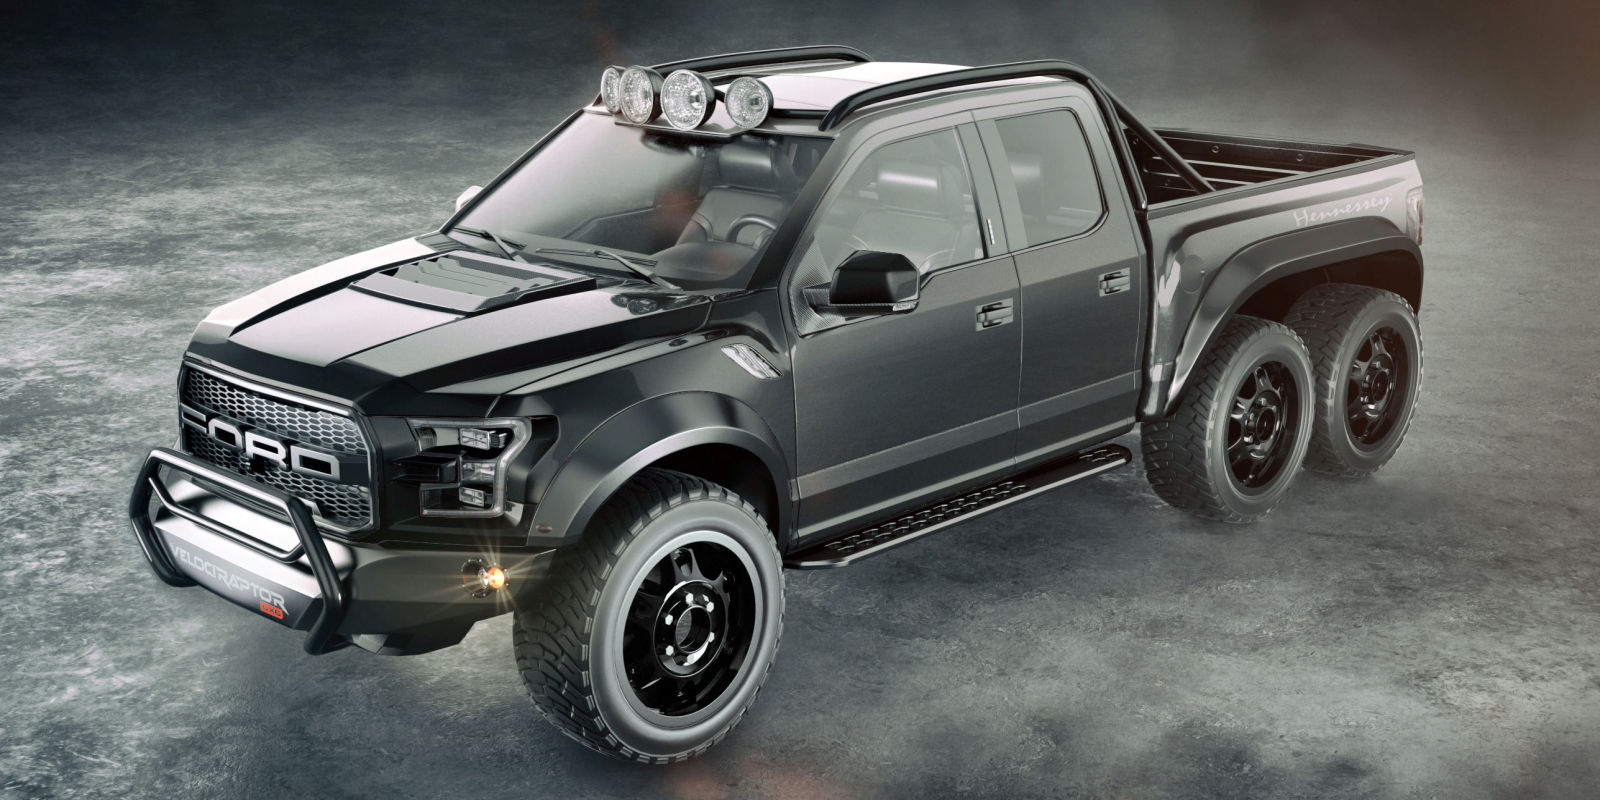 hennessey-velociraptor-6x6-revealed-1